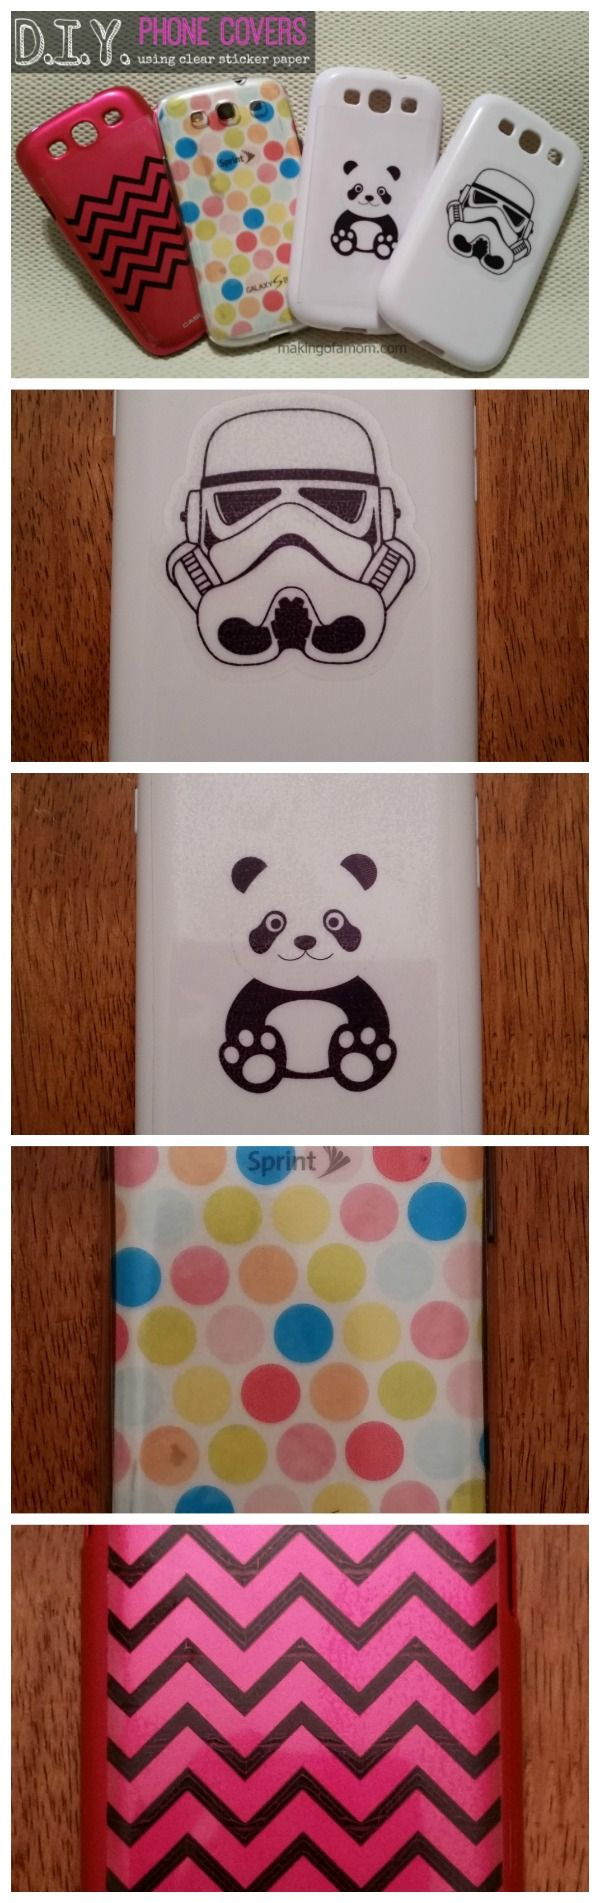 Sticky paper for crafts - Diy Phone Covers With Silhouette Clear Sticker Paper